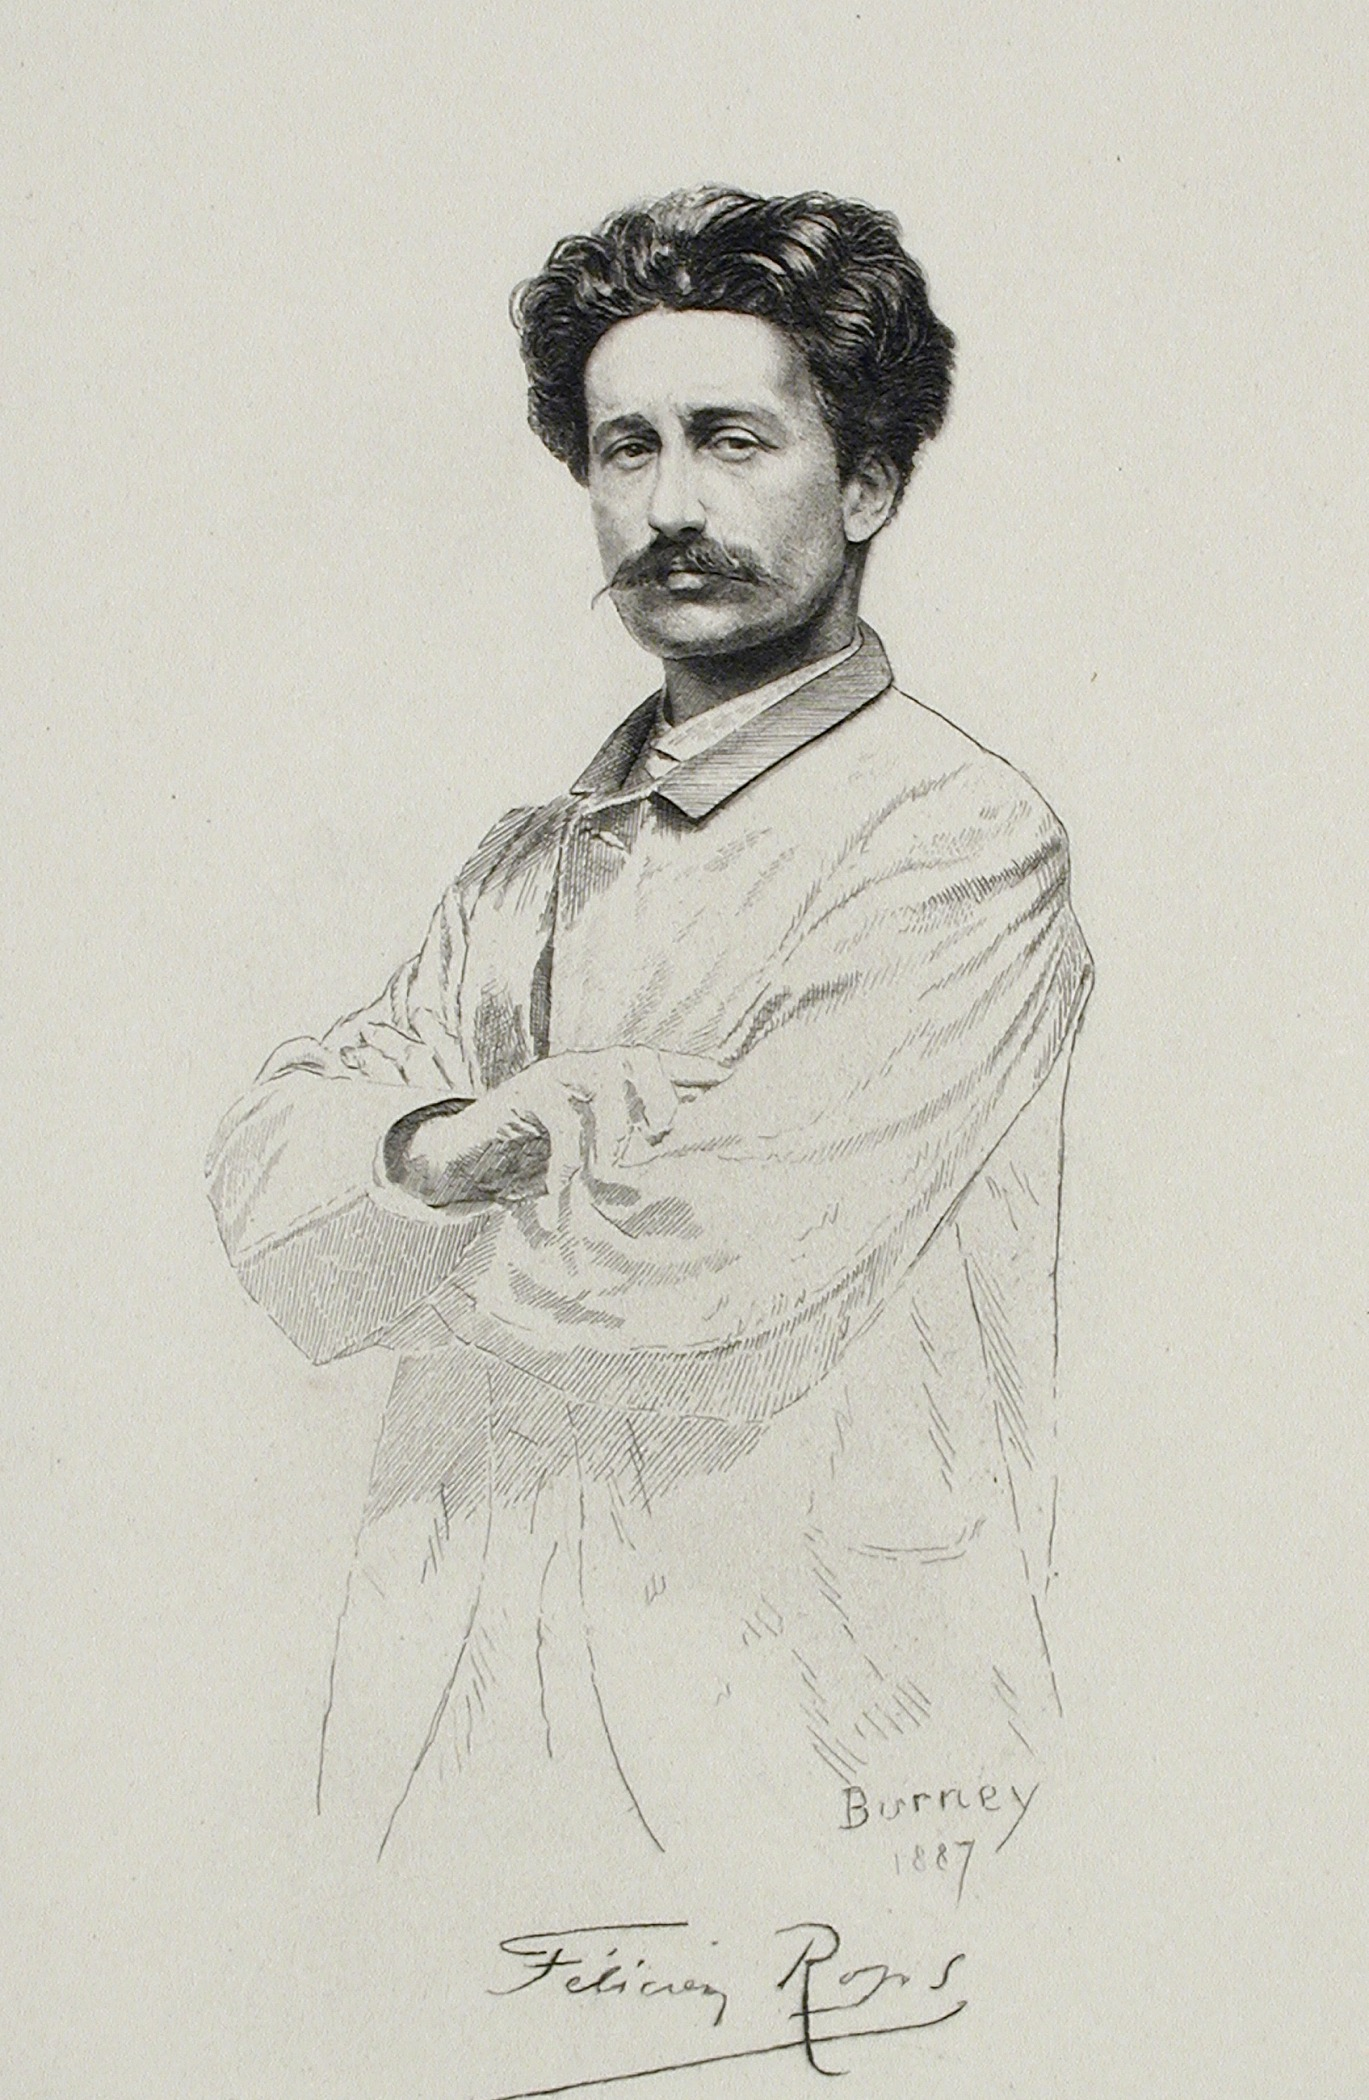 Image of Félicien Rops from Wikidata